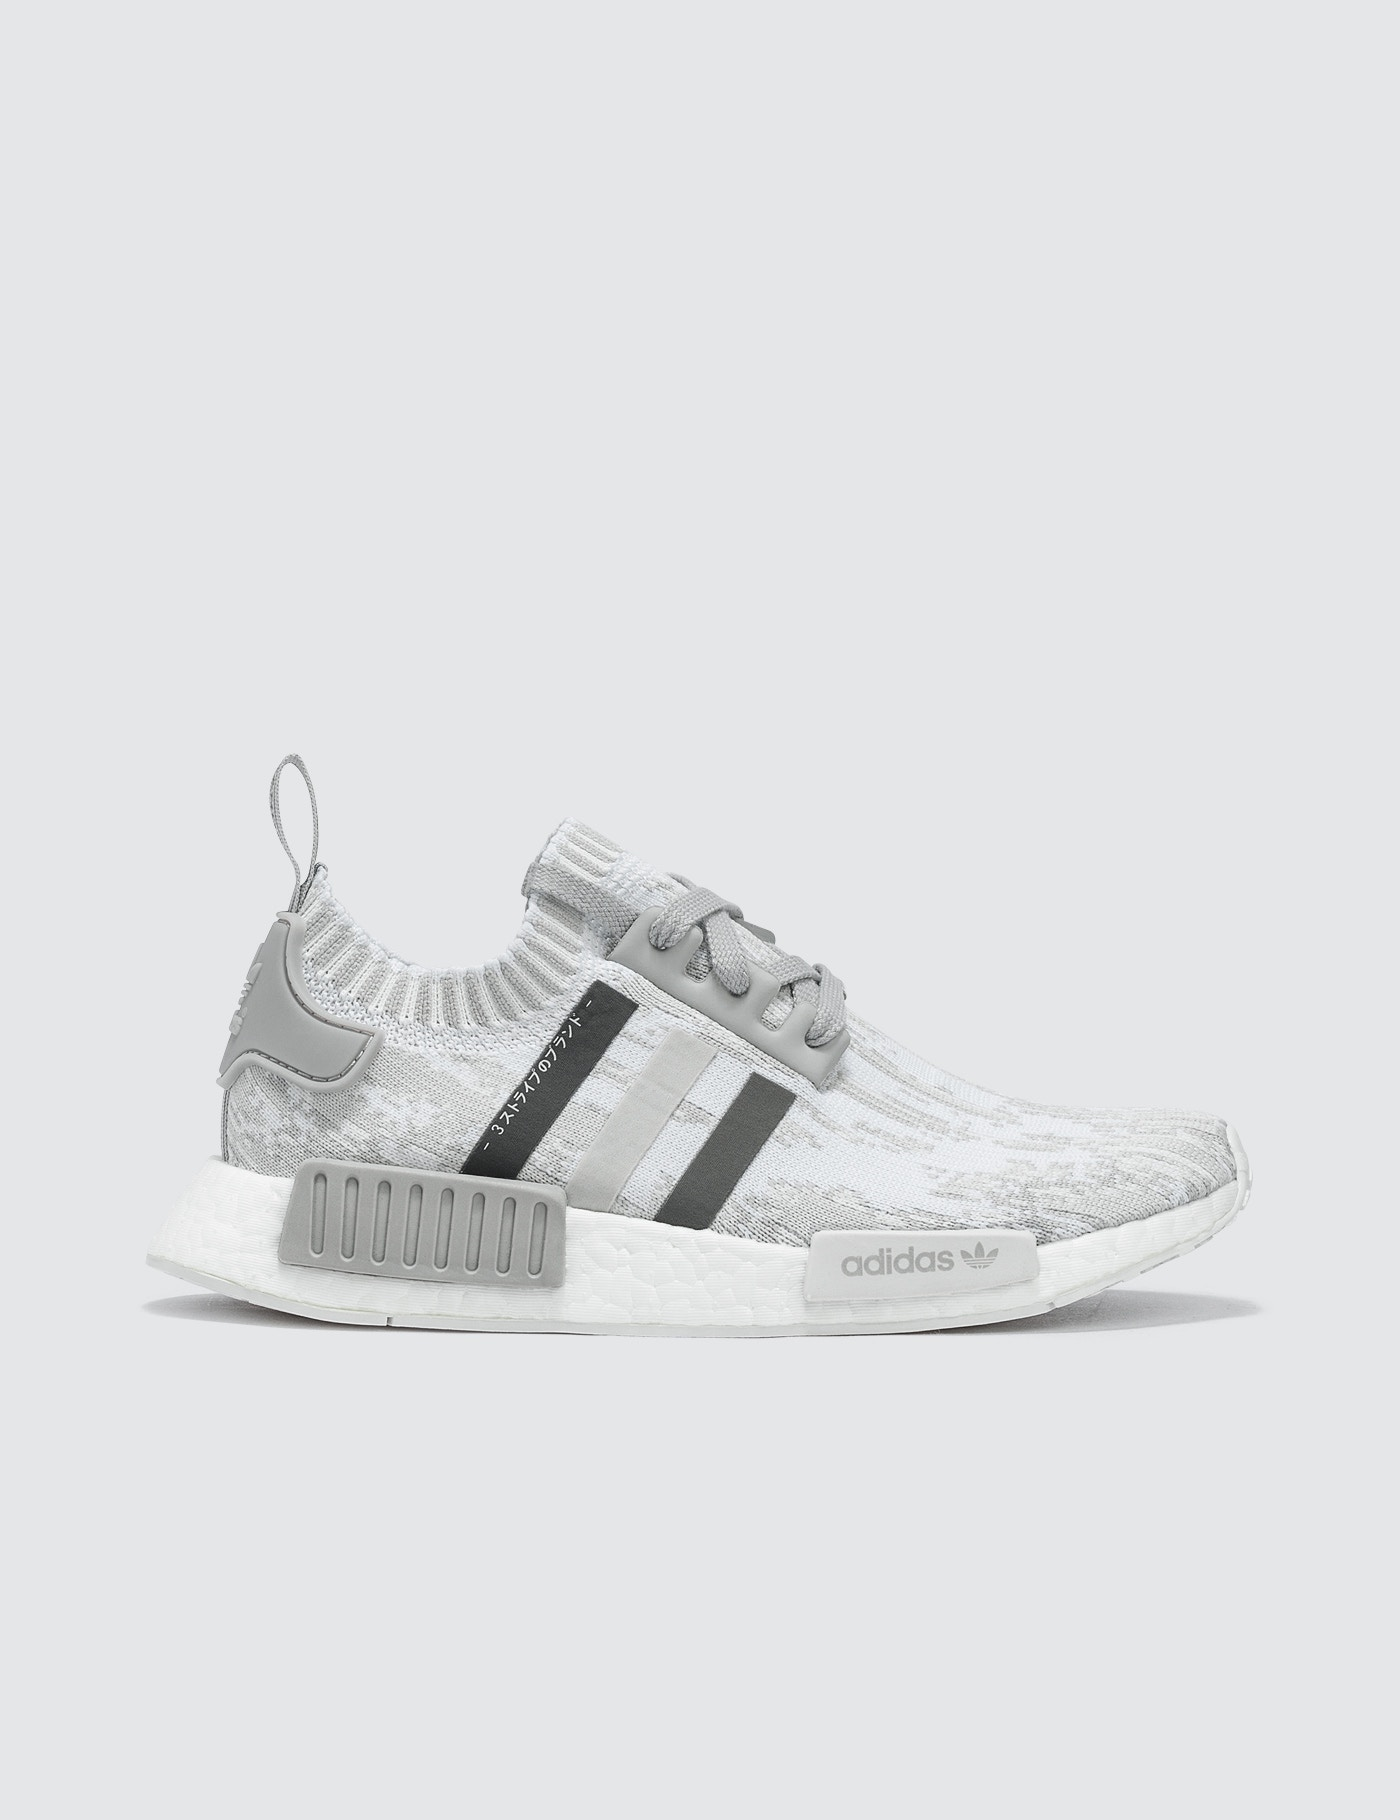 a51e362825930 Buy Original Adidas Originals NMD R1 W PK at Indonesia